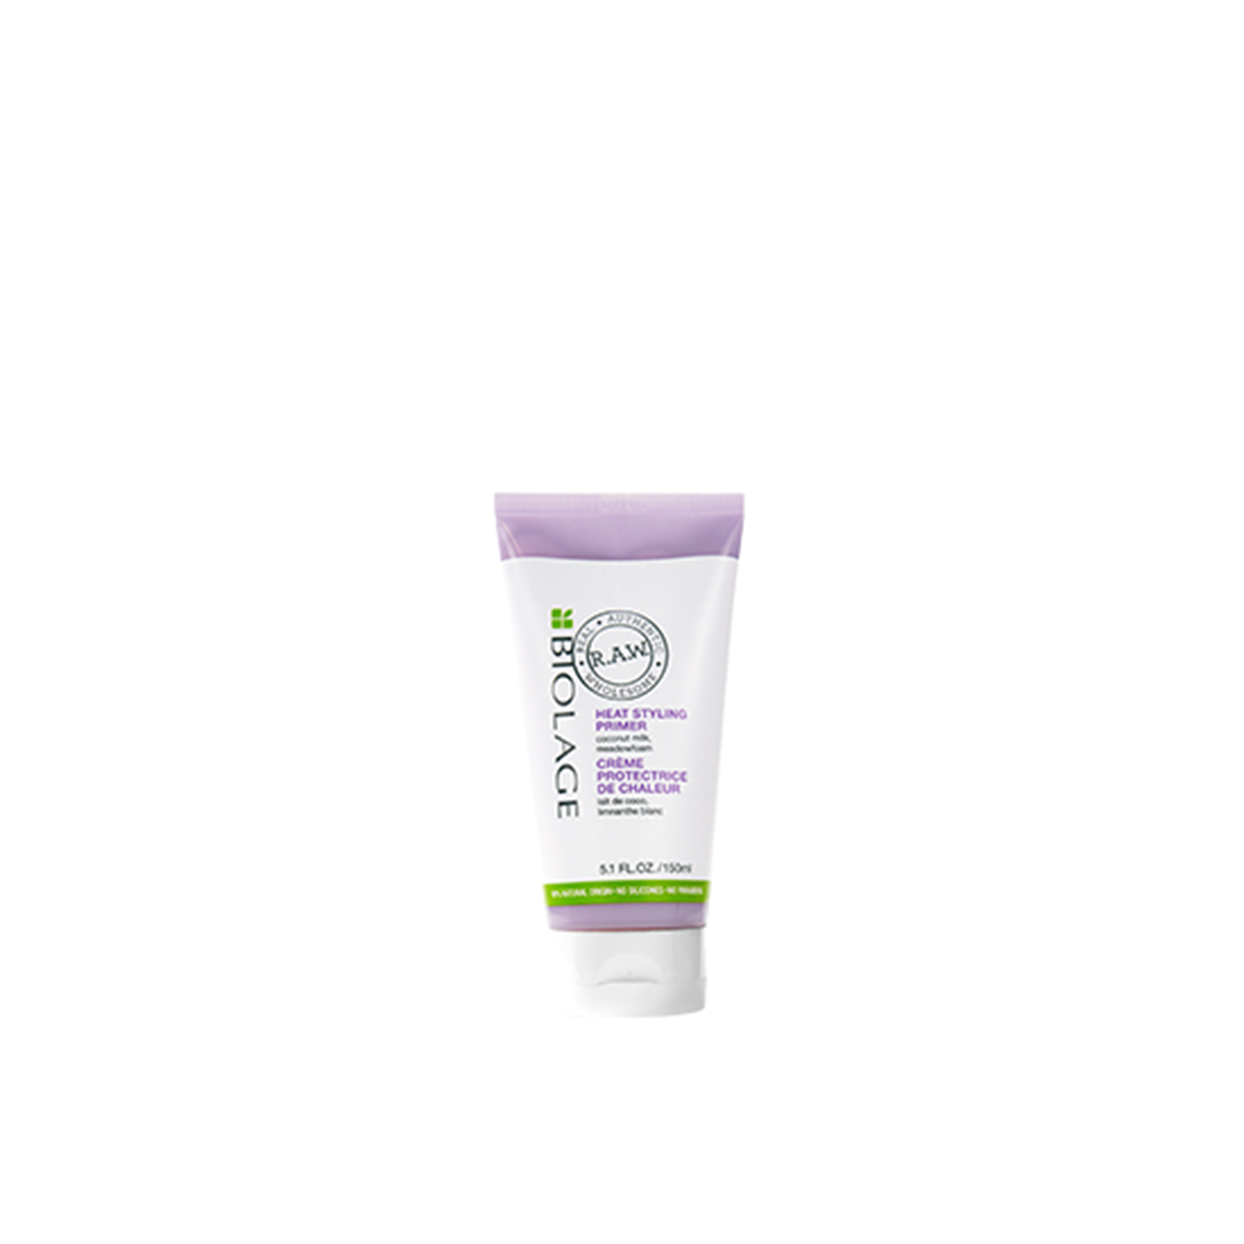 Biolage RAW Color Care Heat Primer